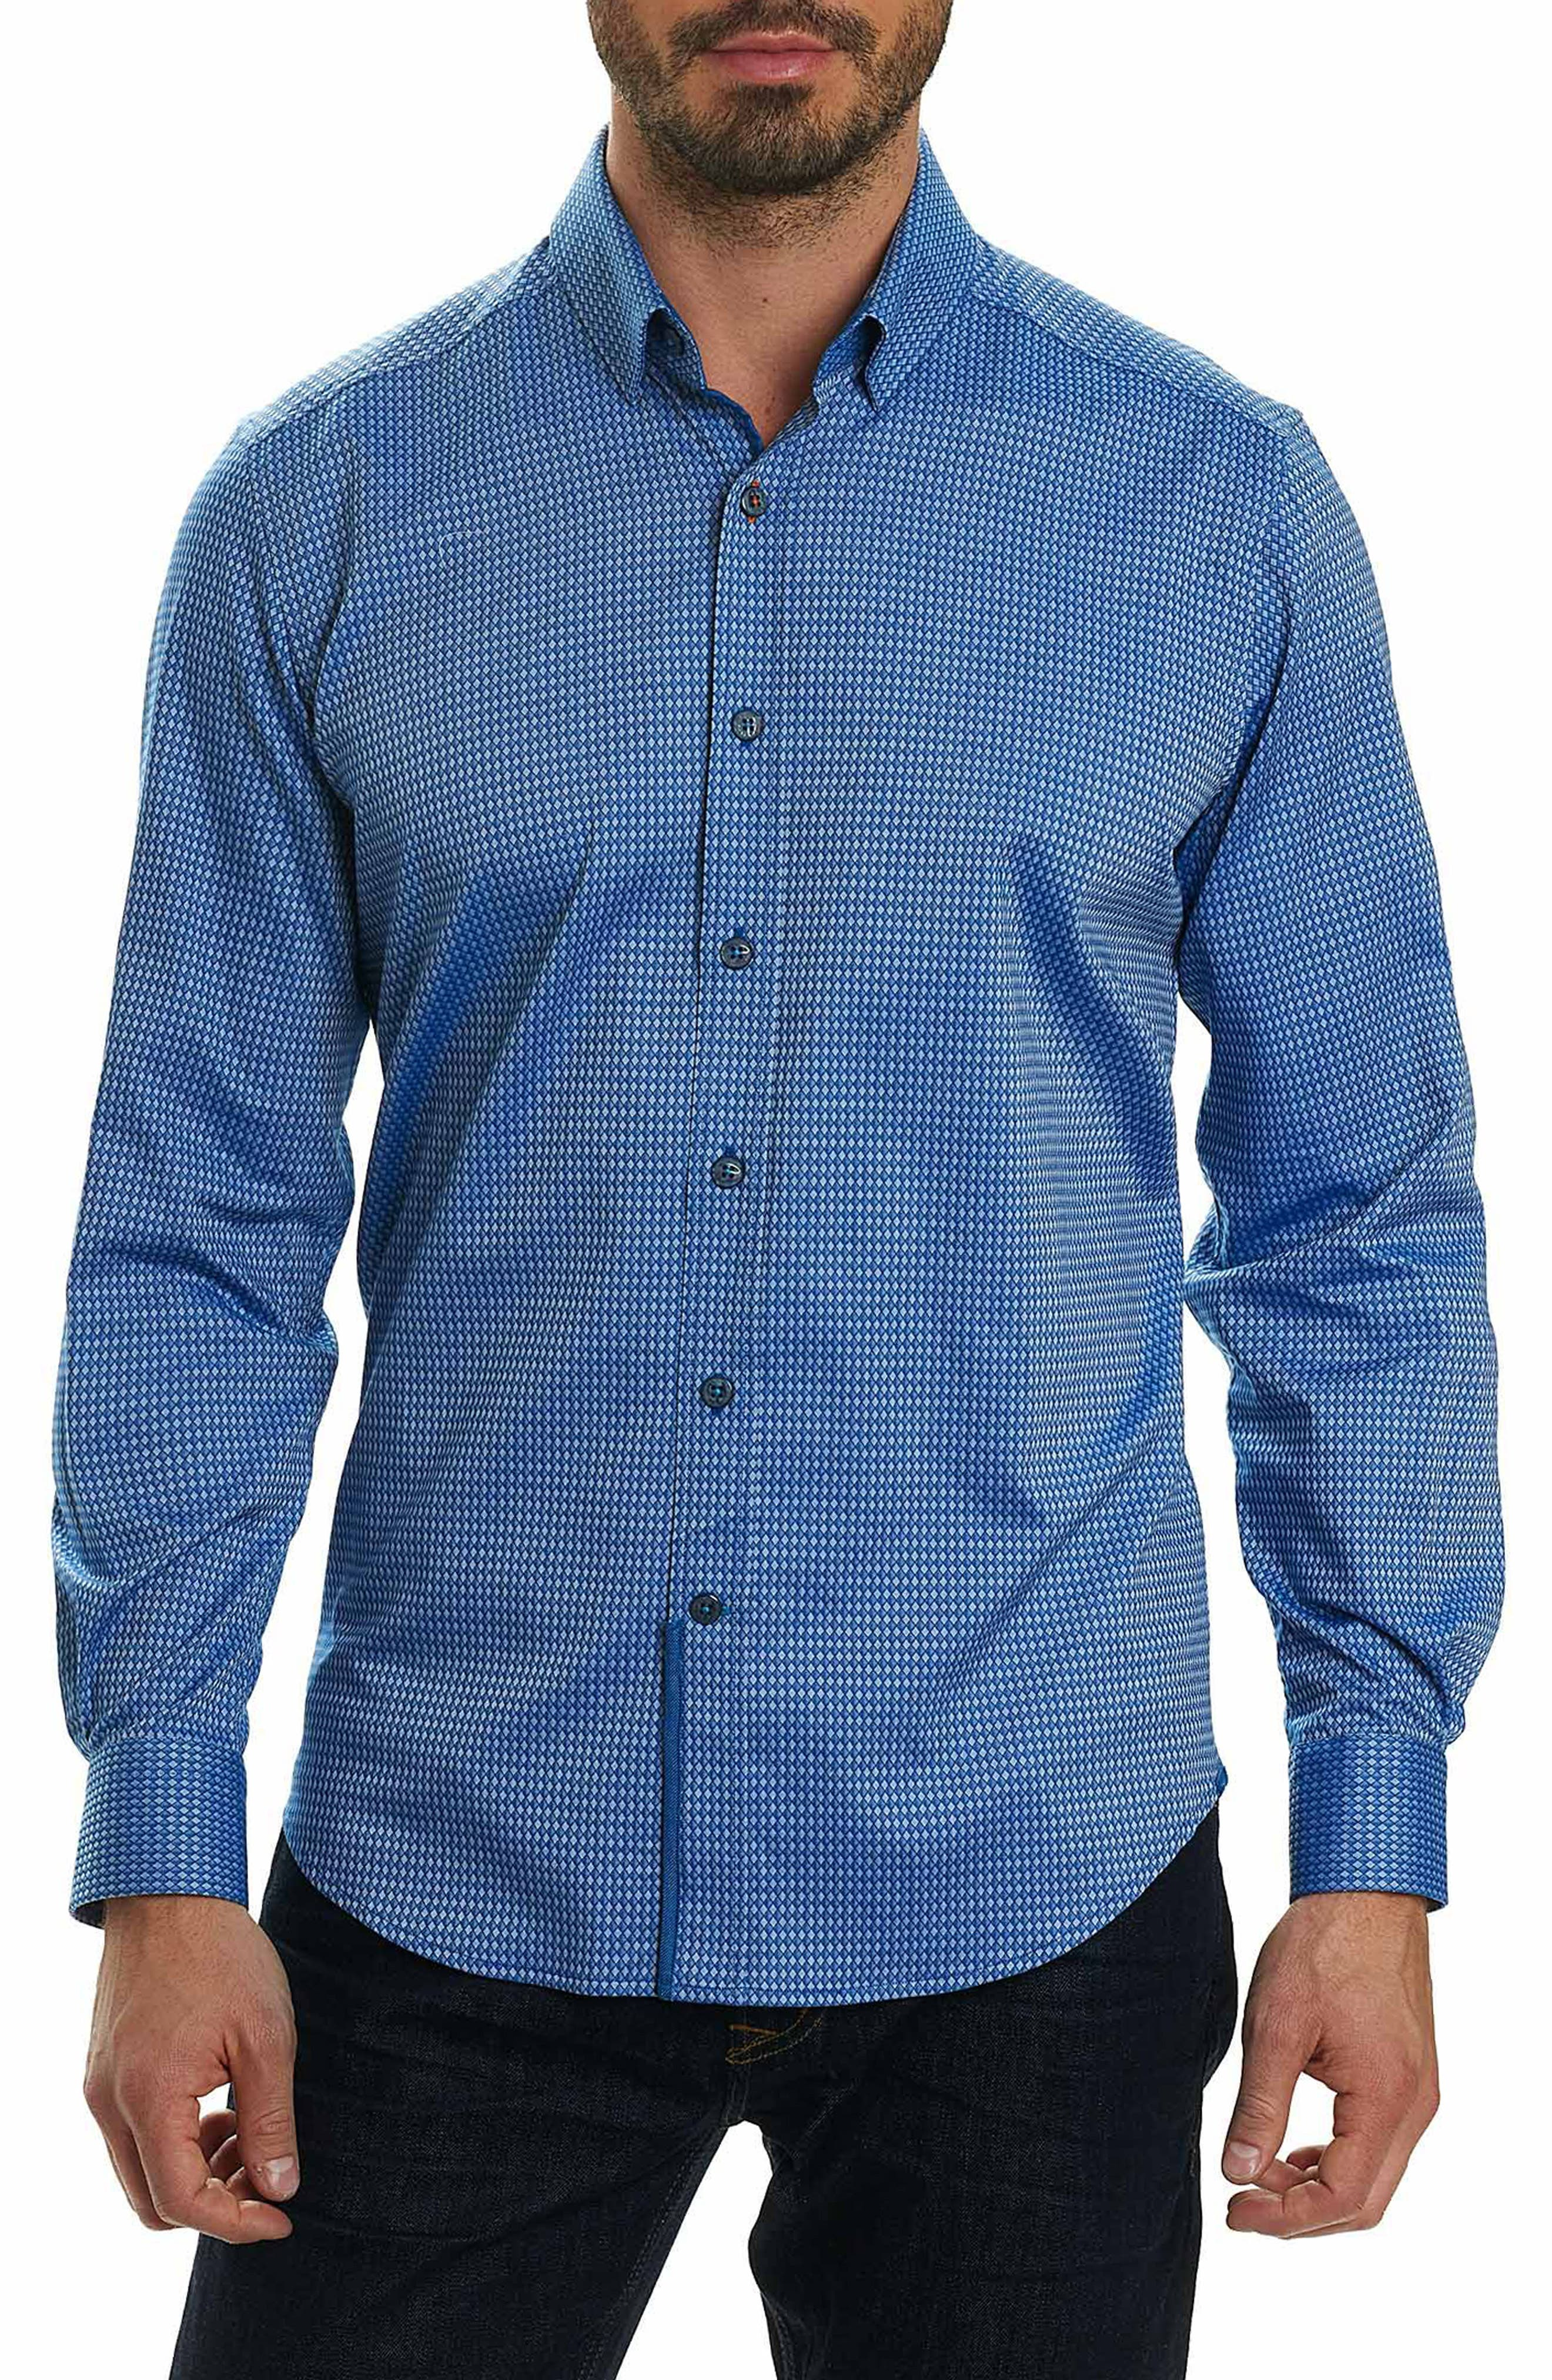 Matthew Tailored Fit Print Sport Shirt,                         Main,                         color, Navy